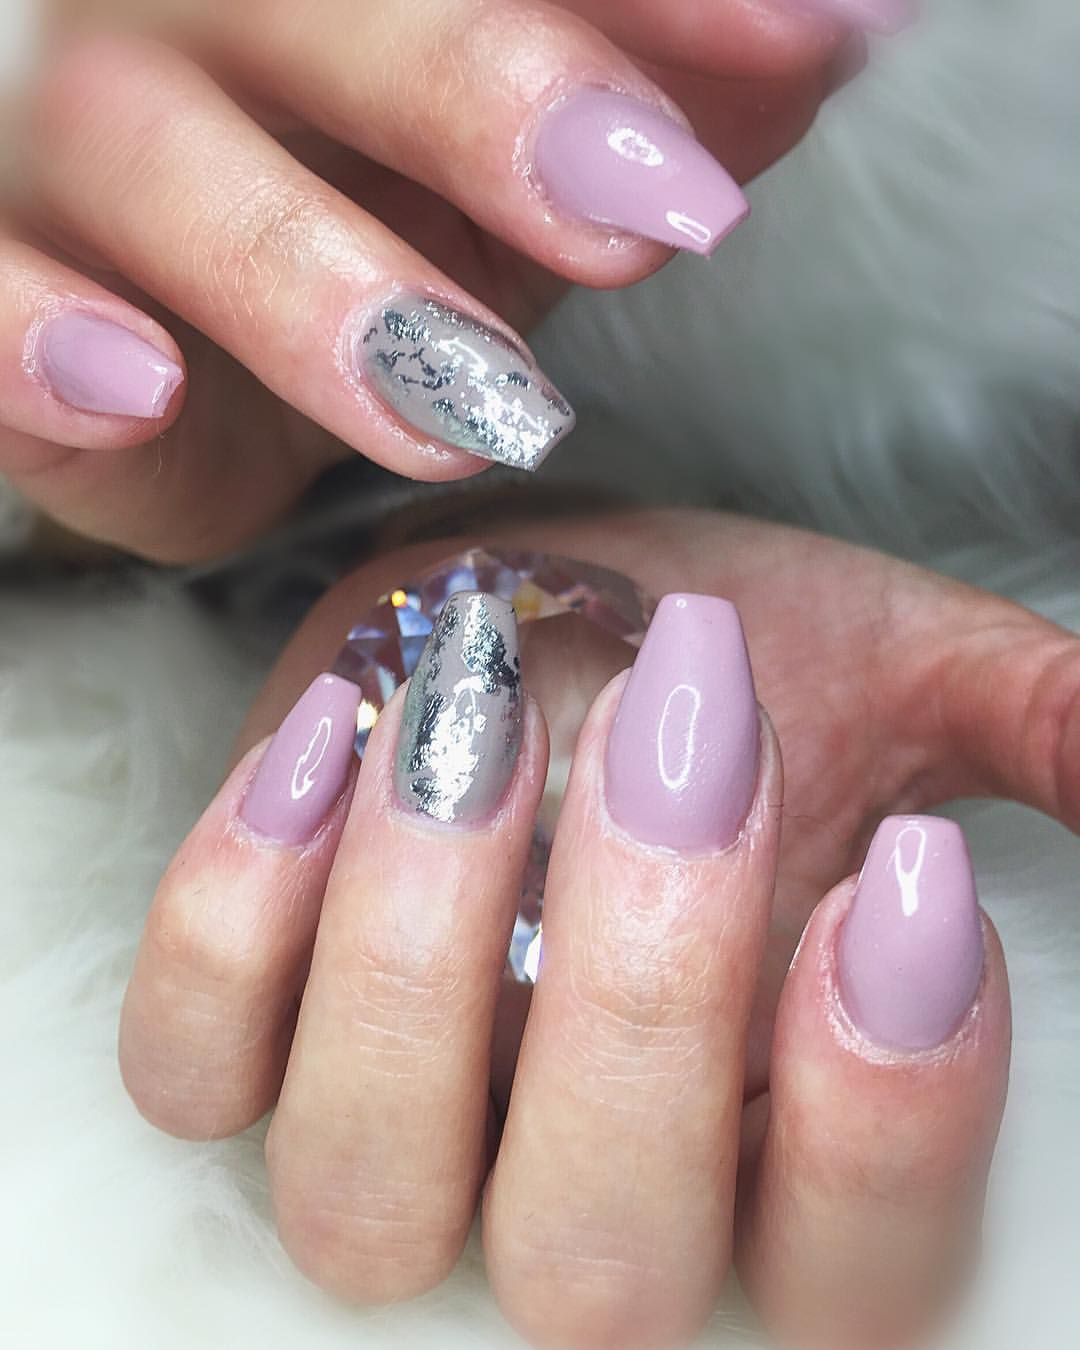 lilly nails stockholm